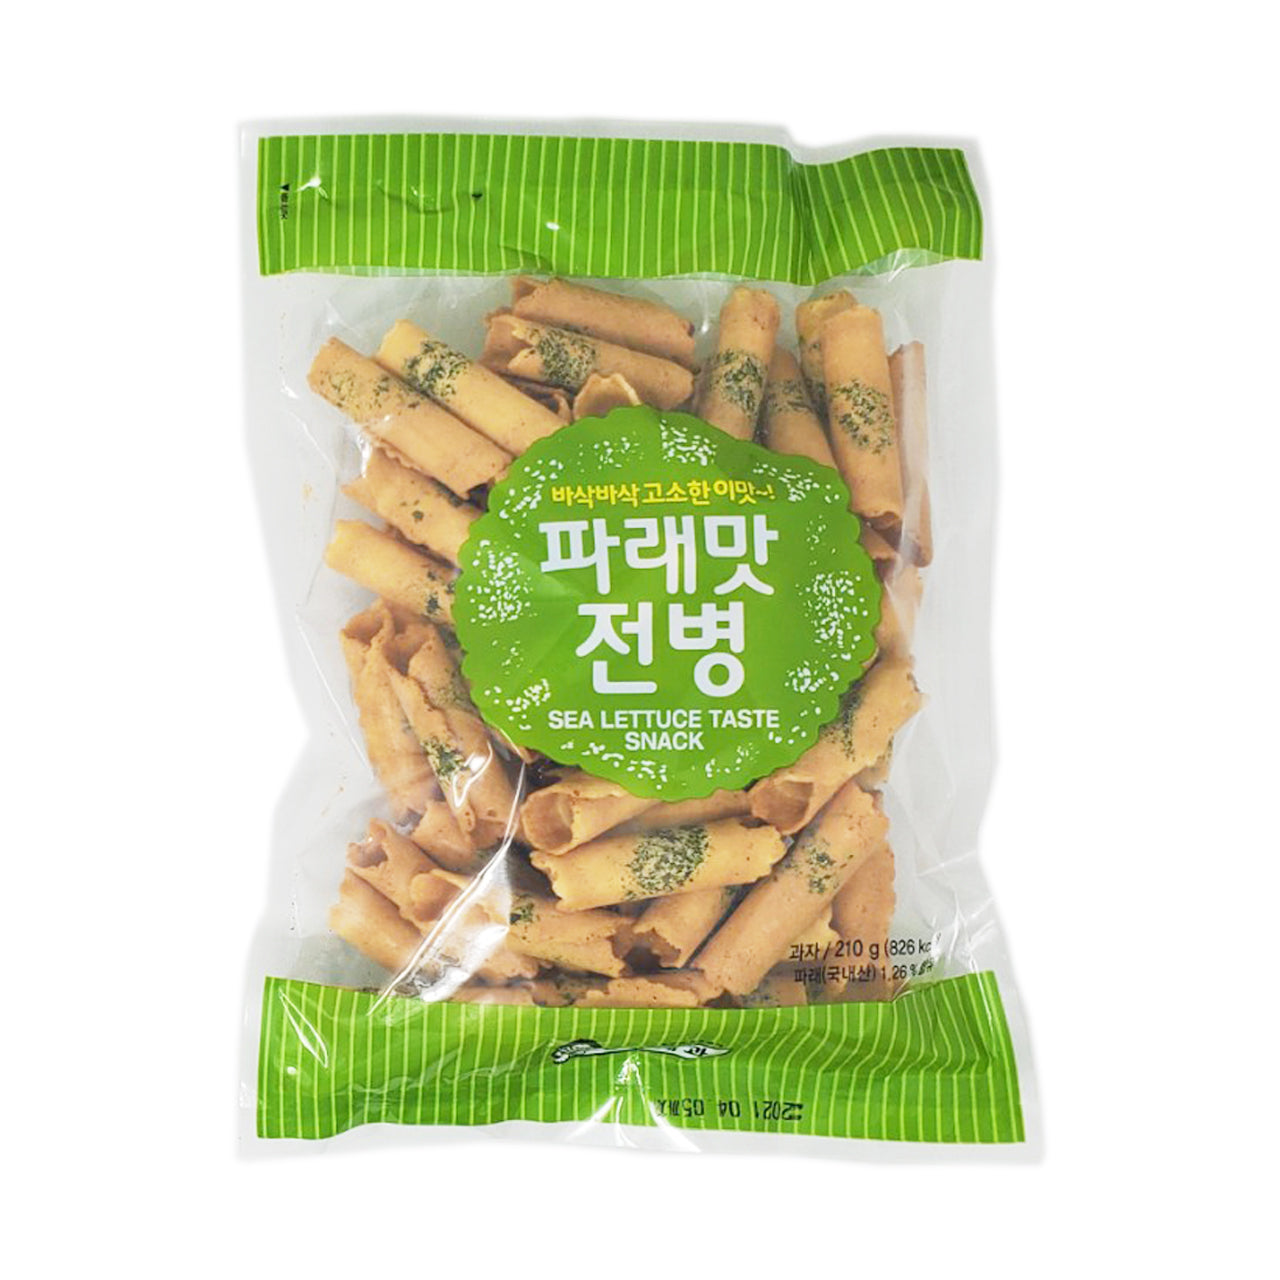 파래맛 전병 (Sea Lettuce Flavor Cracker) 210g